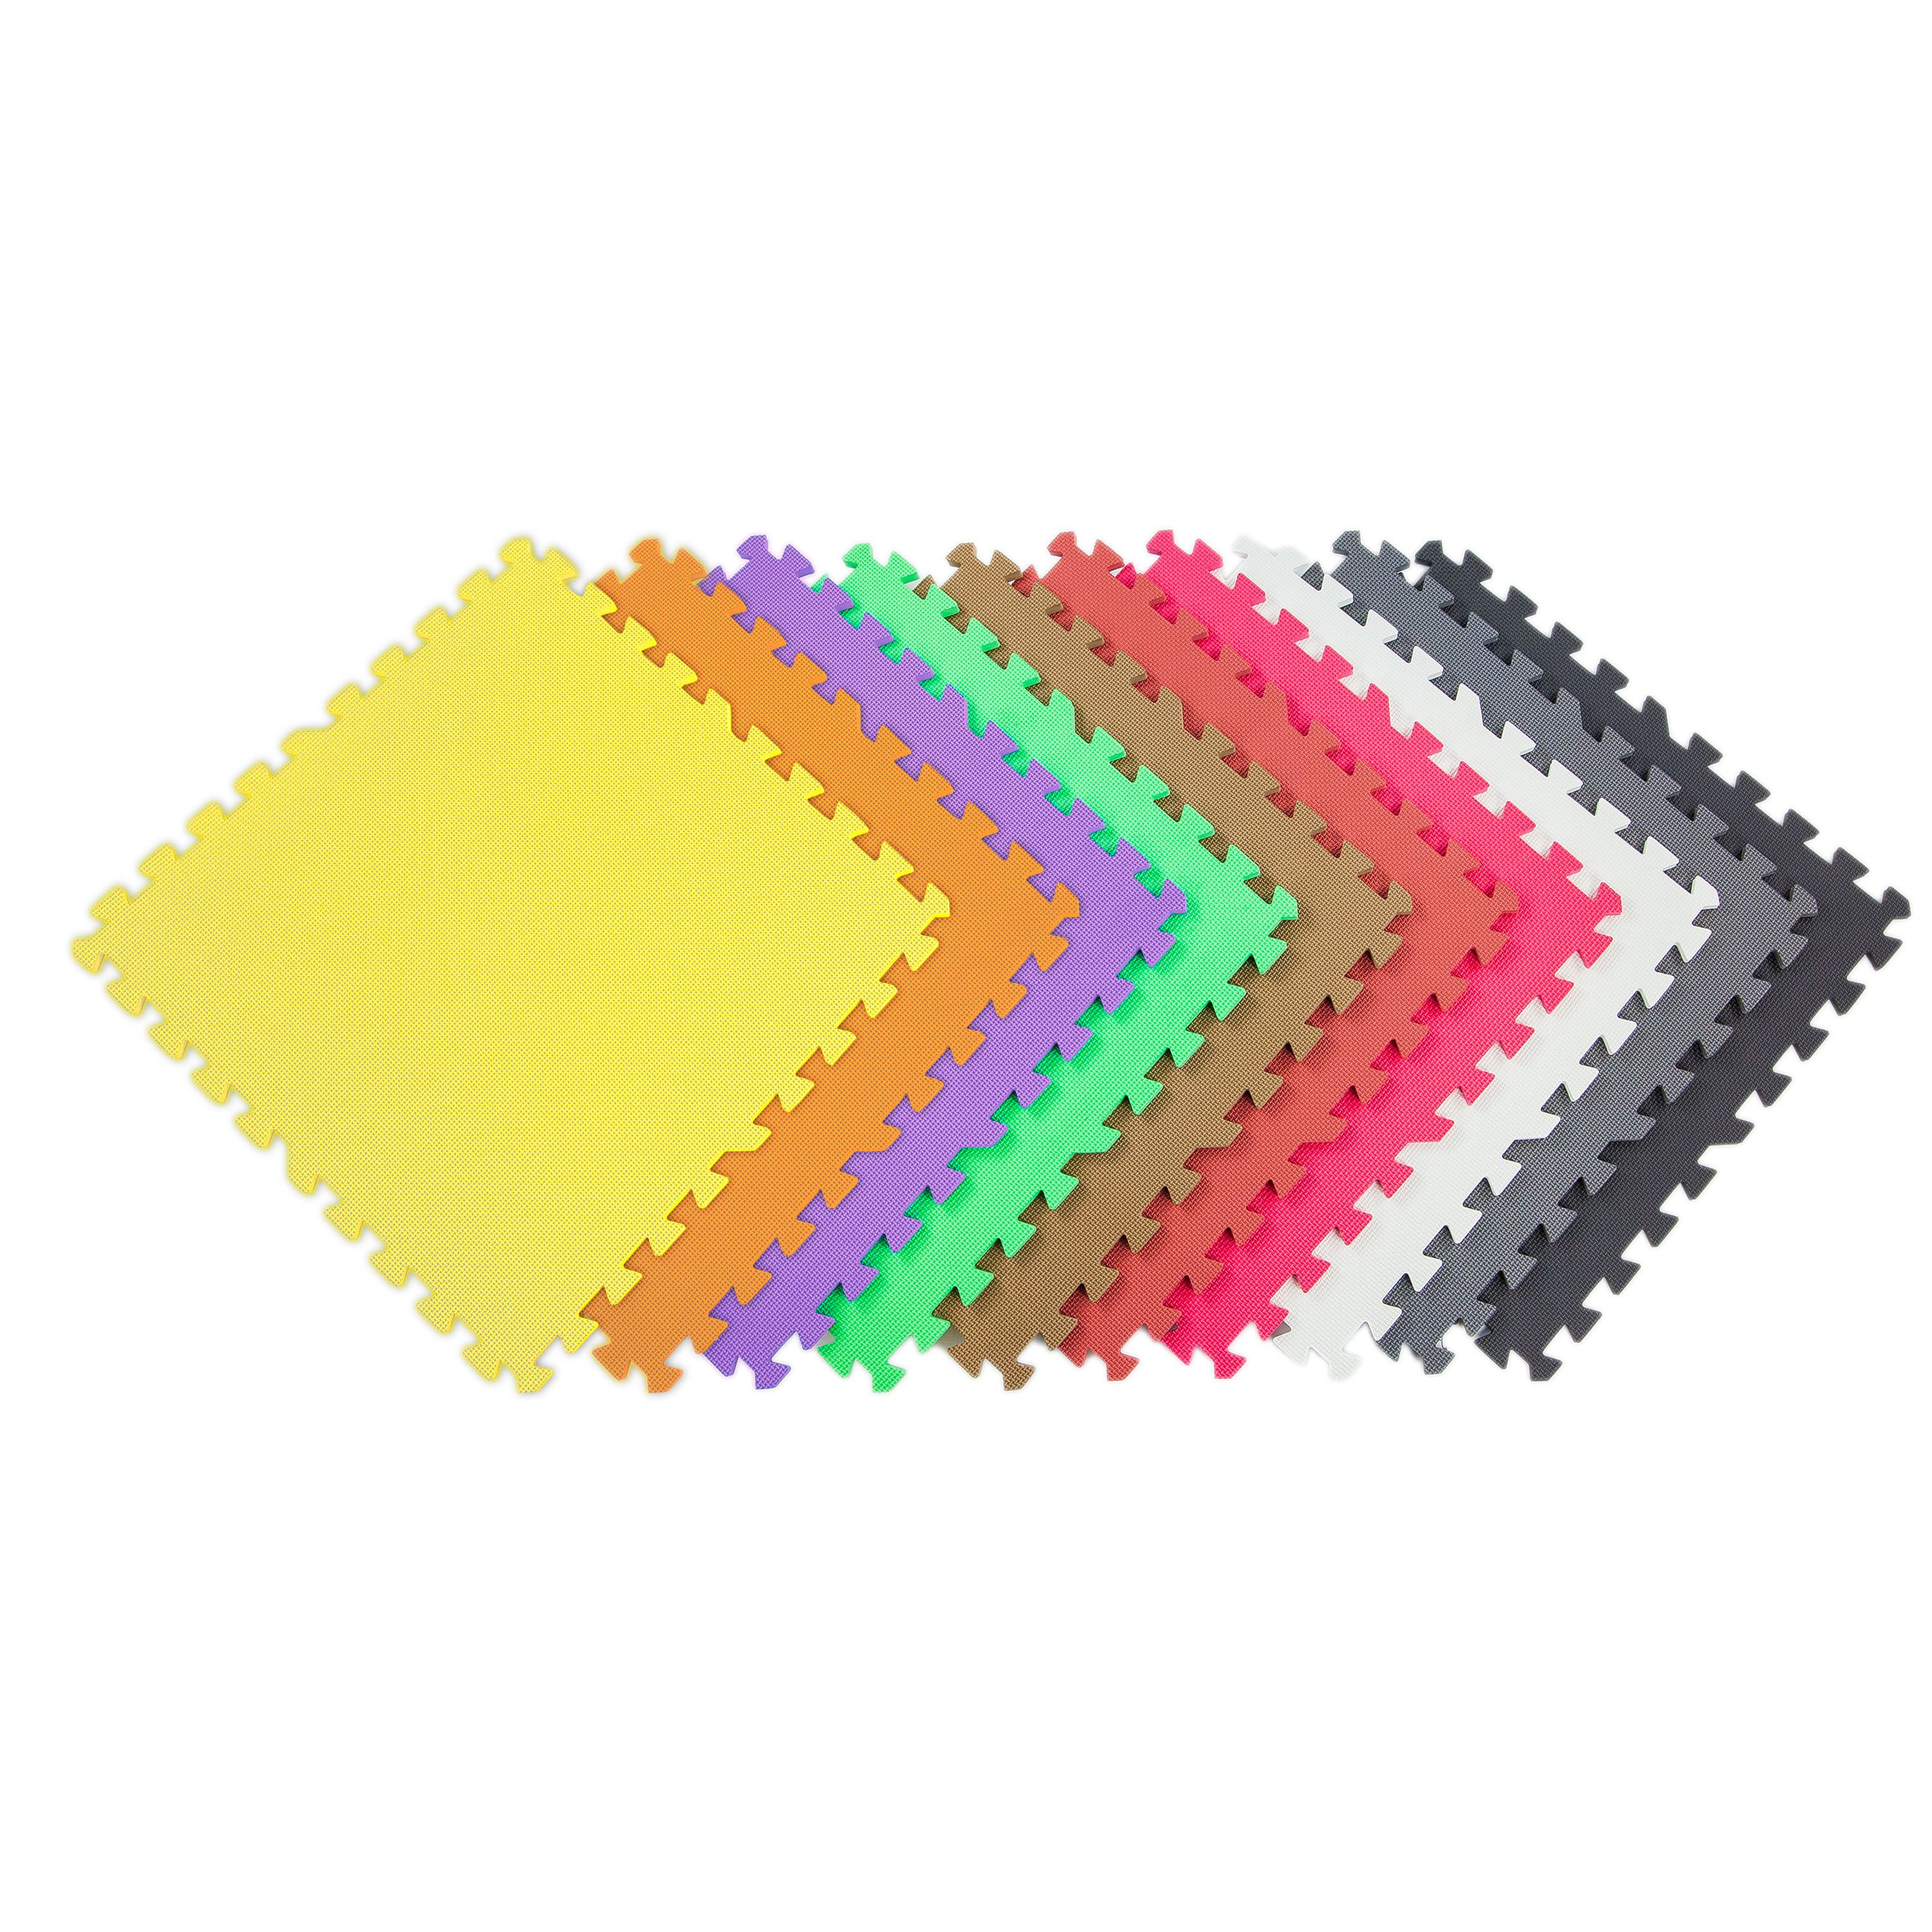 FlooringInc Eco Soft+ 2'x2' EVA Foam Tiles - (50 Graphite) Soft Flooring Play Mat, Gym Flooring